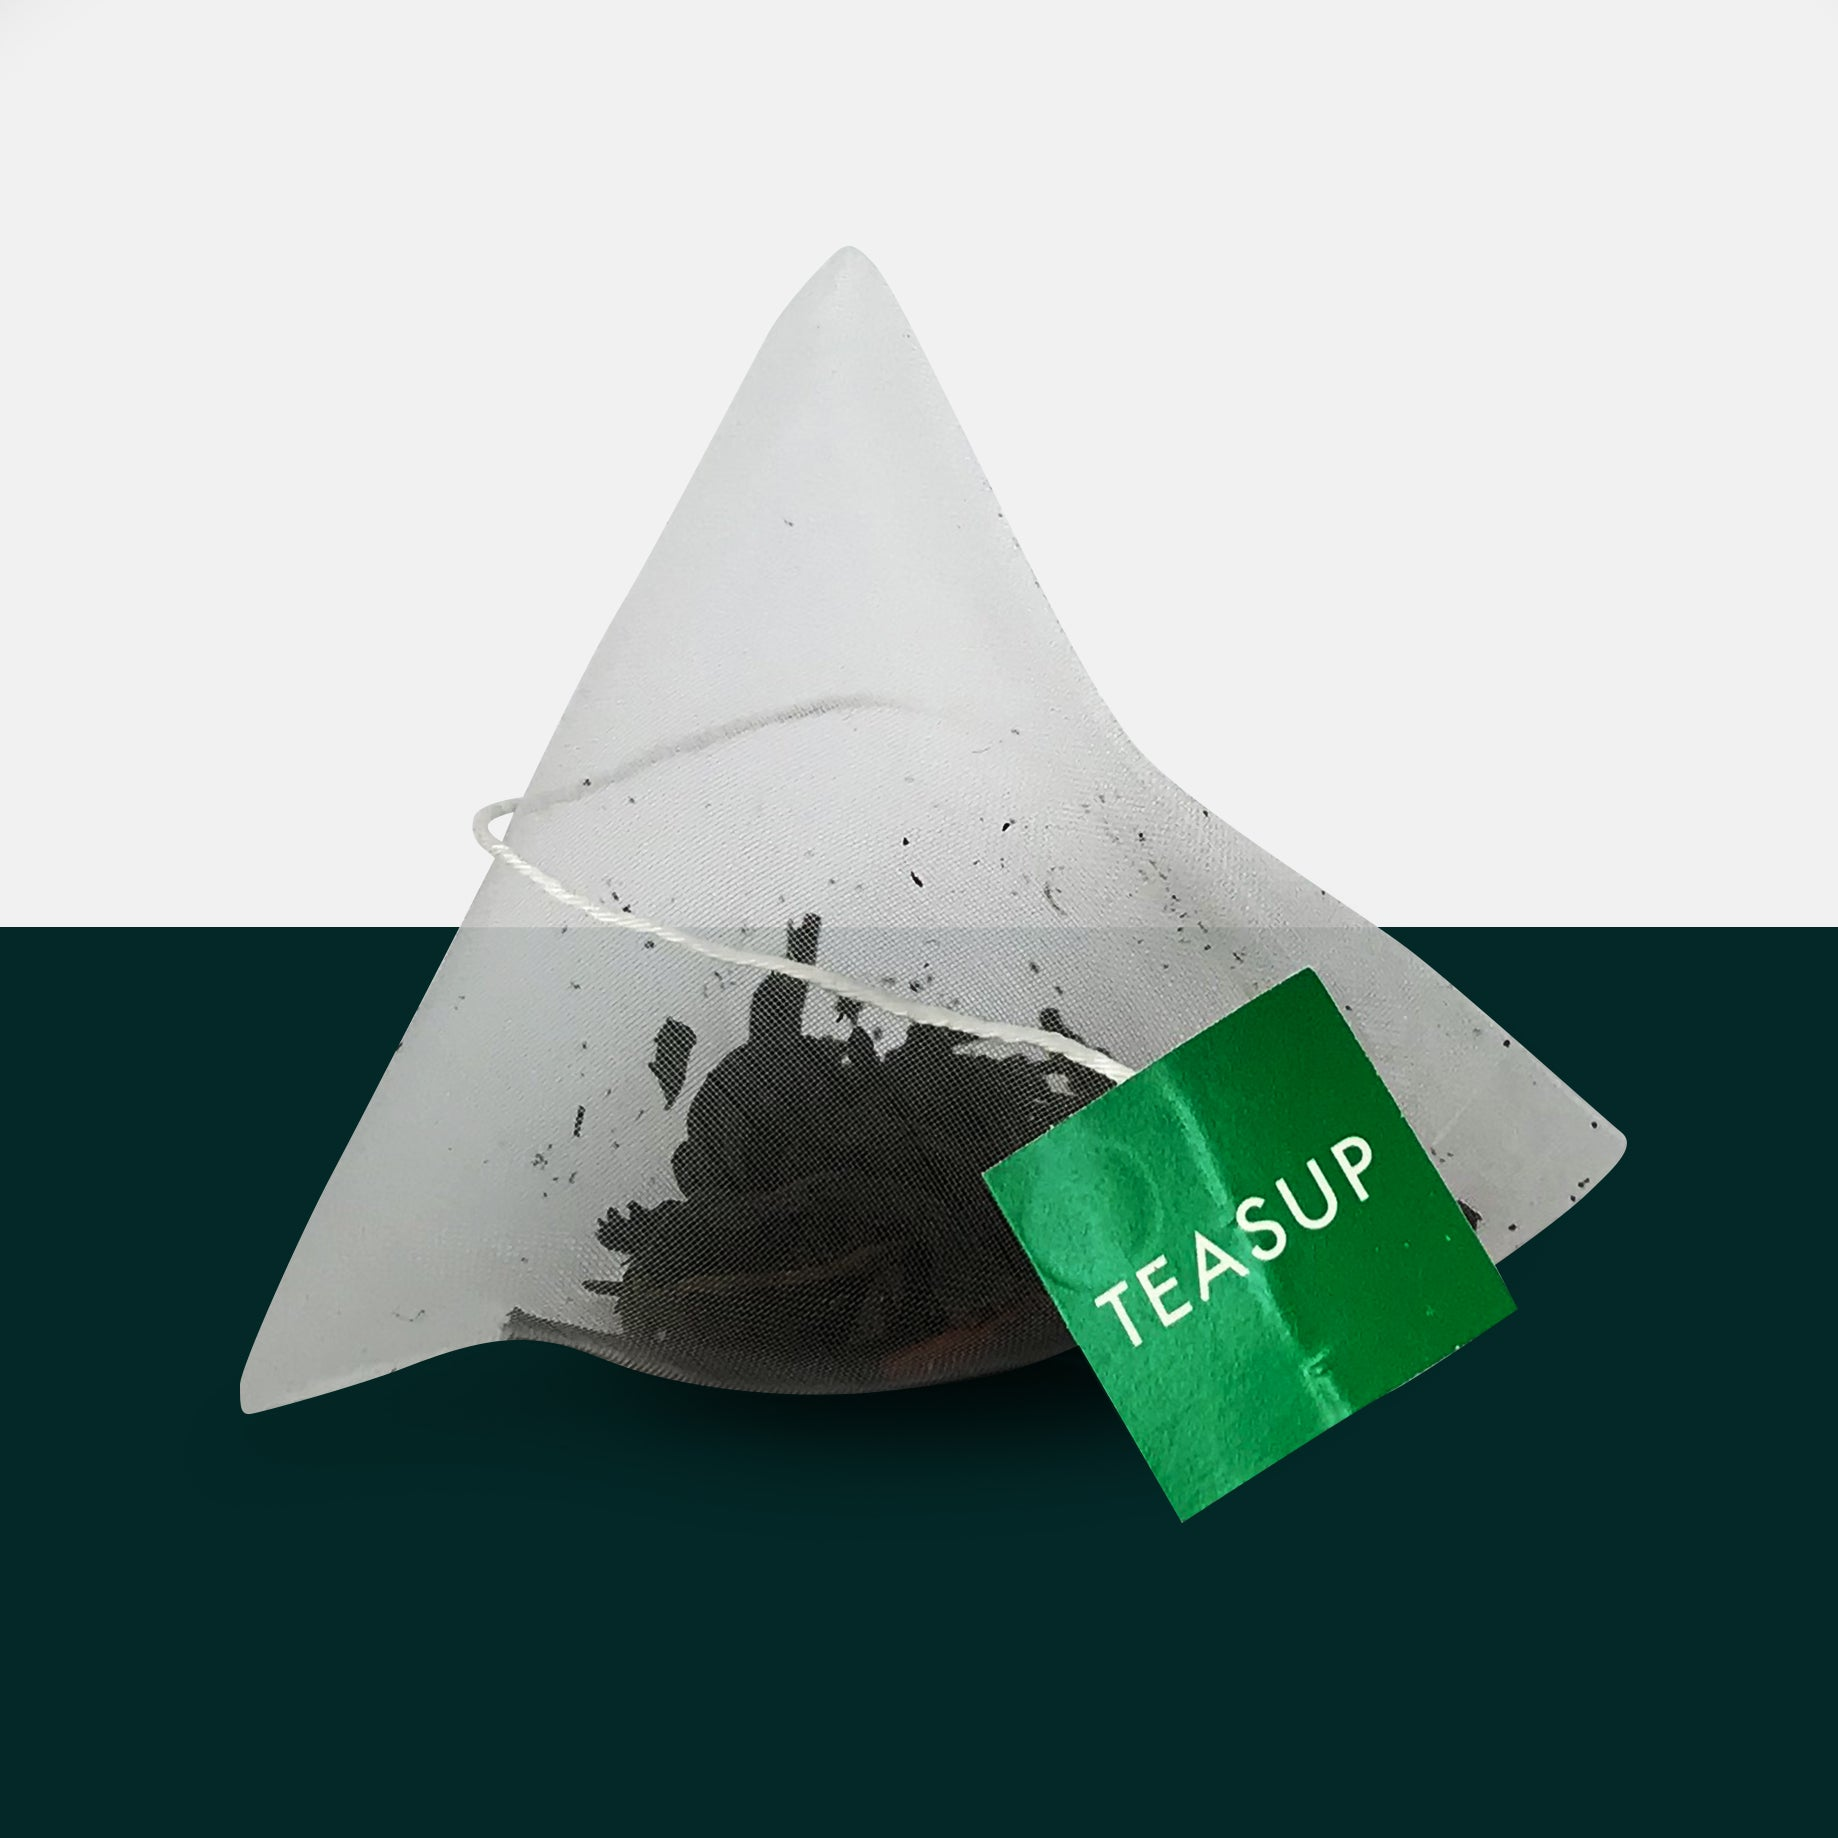 Teasup Malawian Smoked Guava Biodegradable Tea Bag